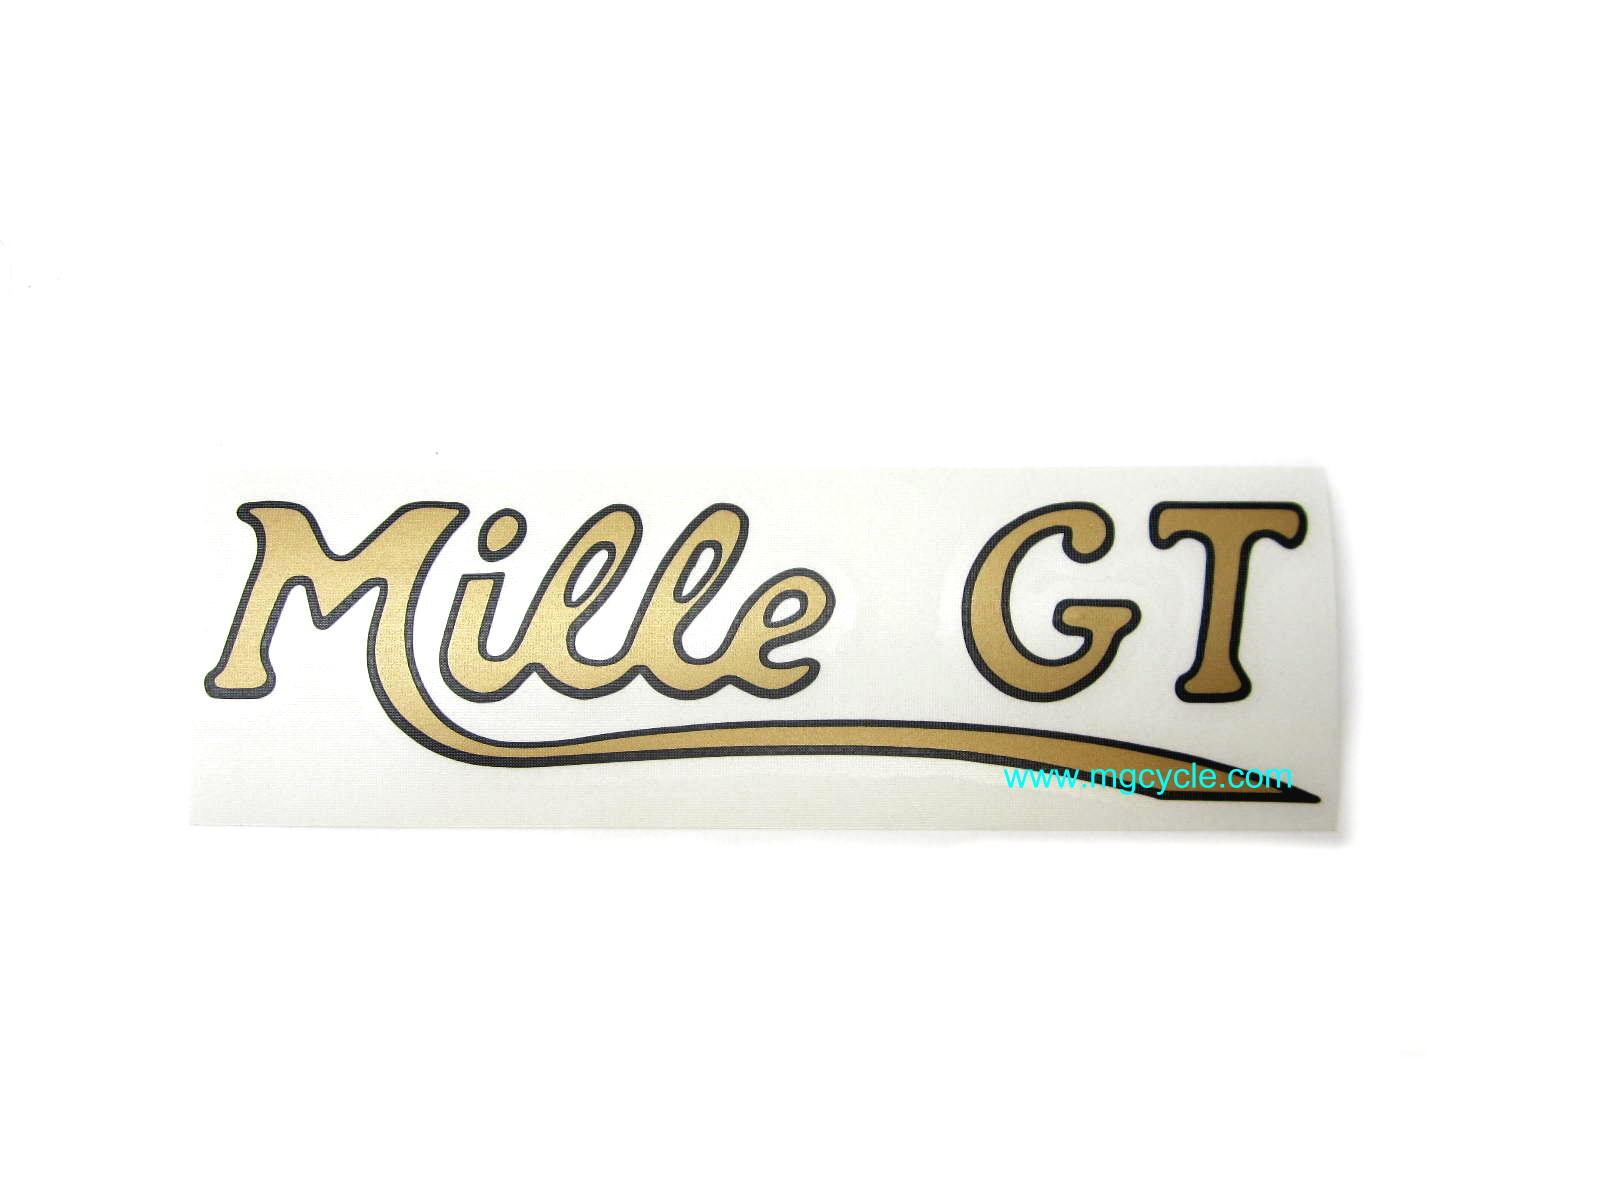 Mille GT side cover decal